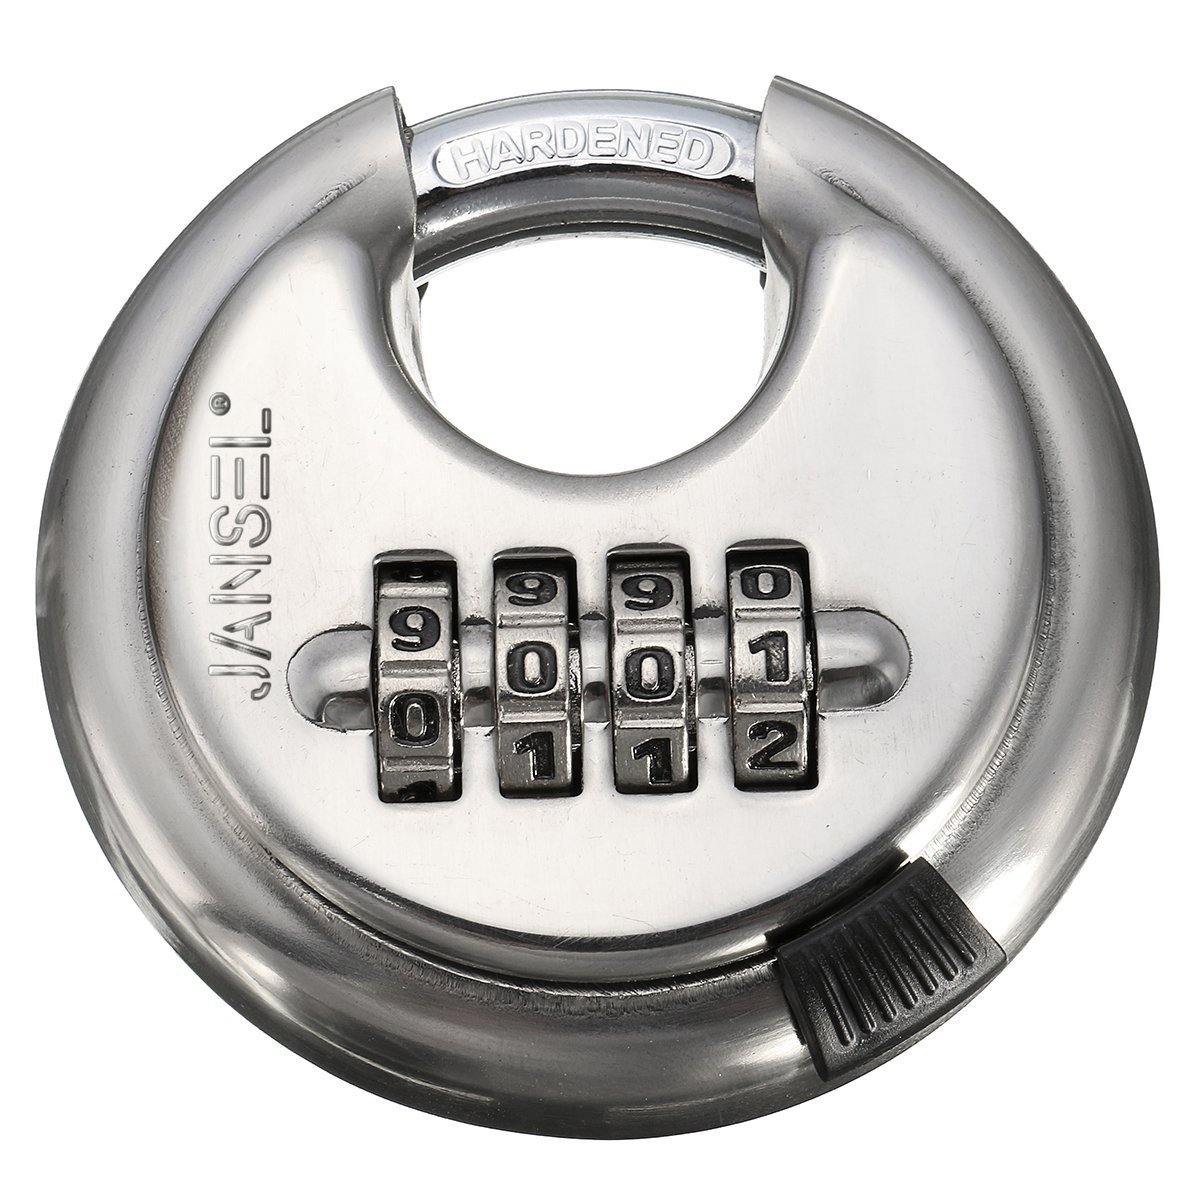 "JANSEL Disc Combination Padlock, Pack of 12, 70mm or 2-3/4""Stainless Steel Round Discus Combination Padlock 4 Dials with Shielded Shackle Hardened Steel Shackle weatherproof combination padlock"